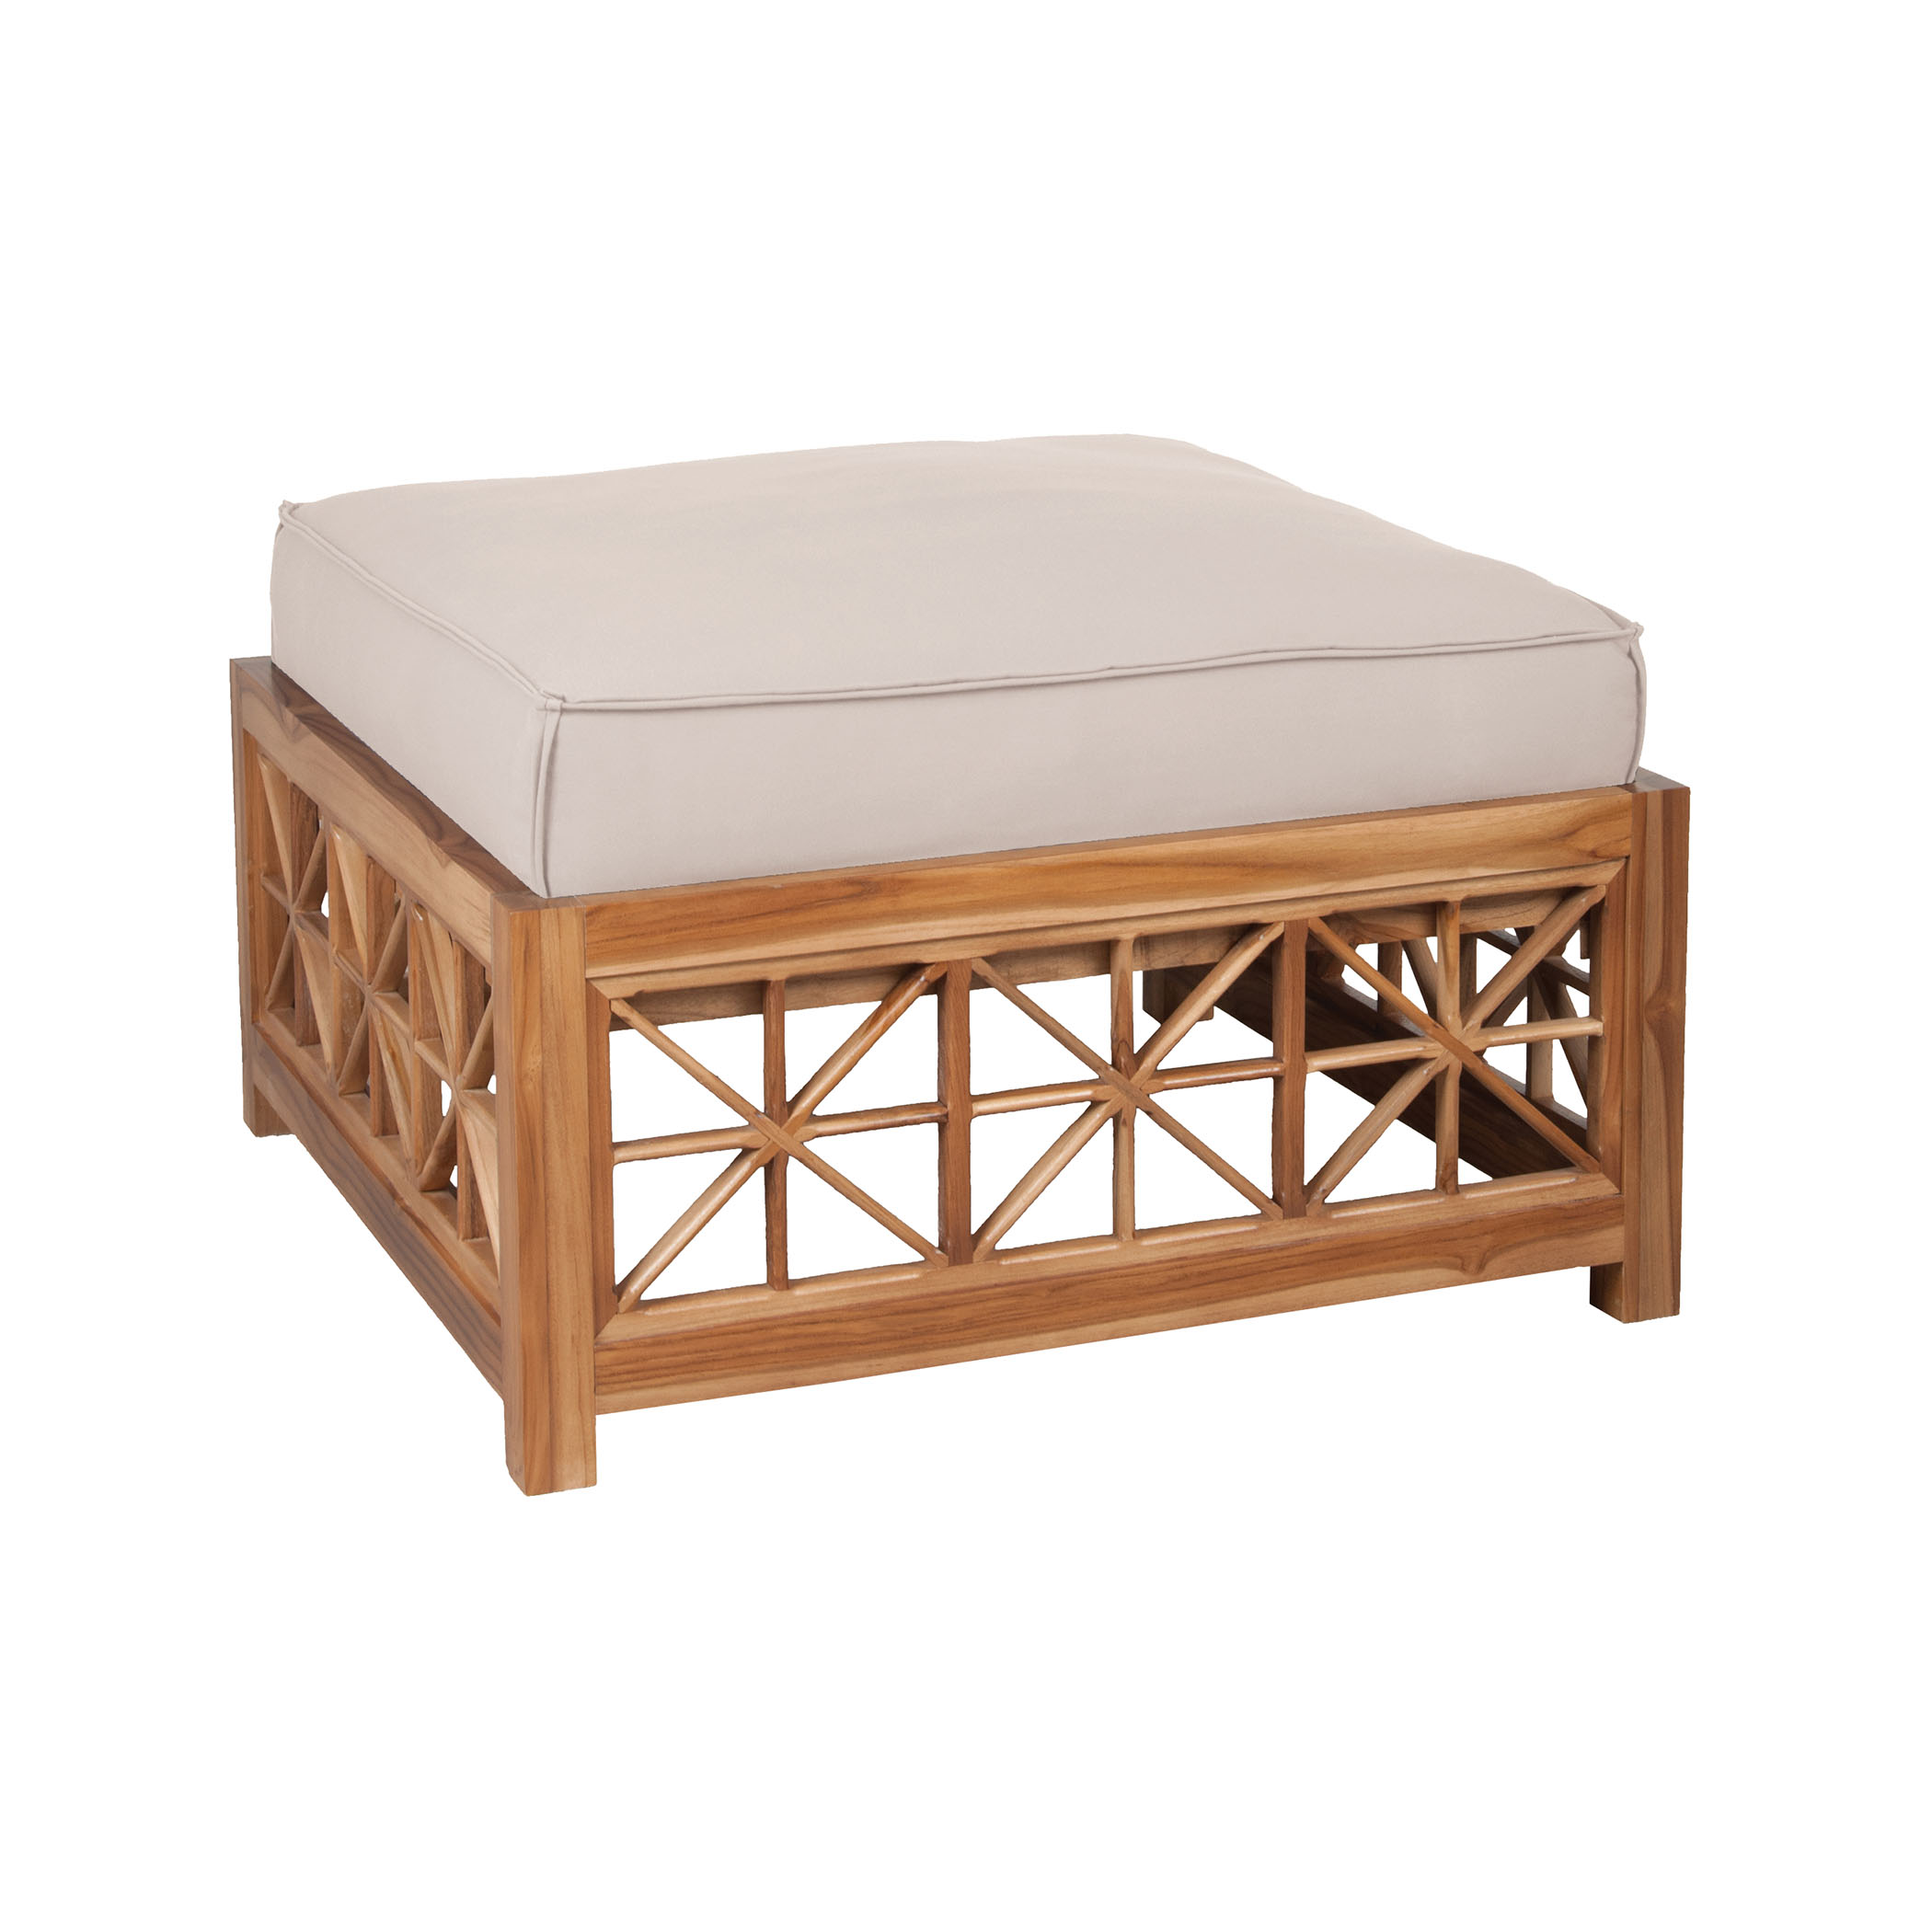 Teak Lattice Square Ottoman Cushion in Cream | Elk Home